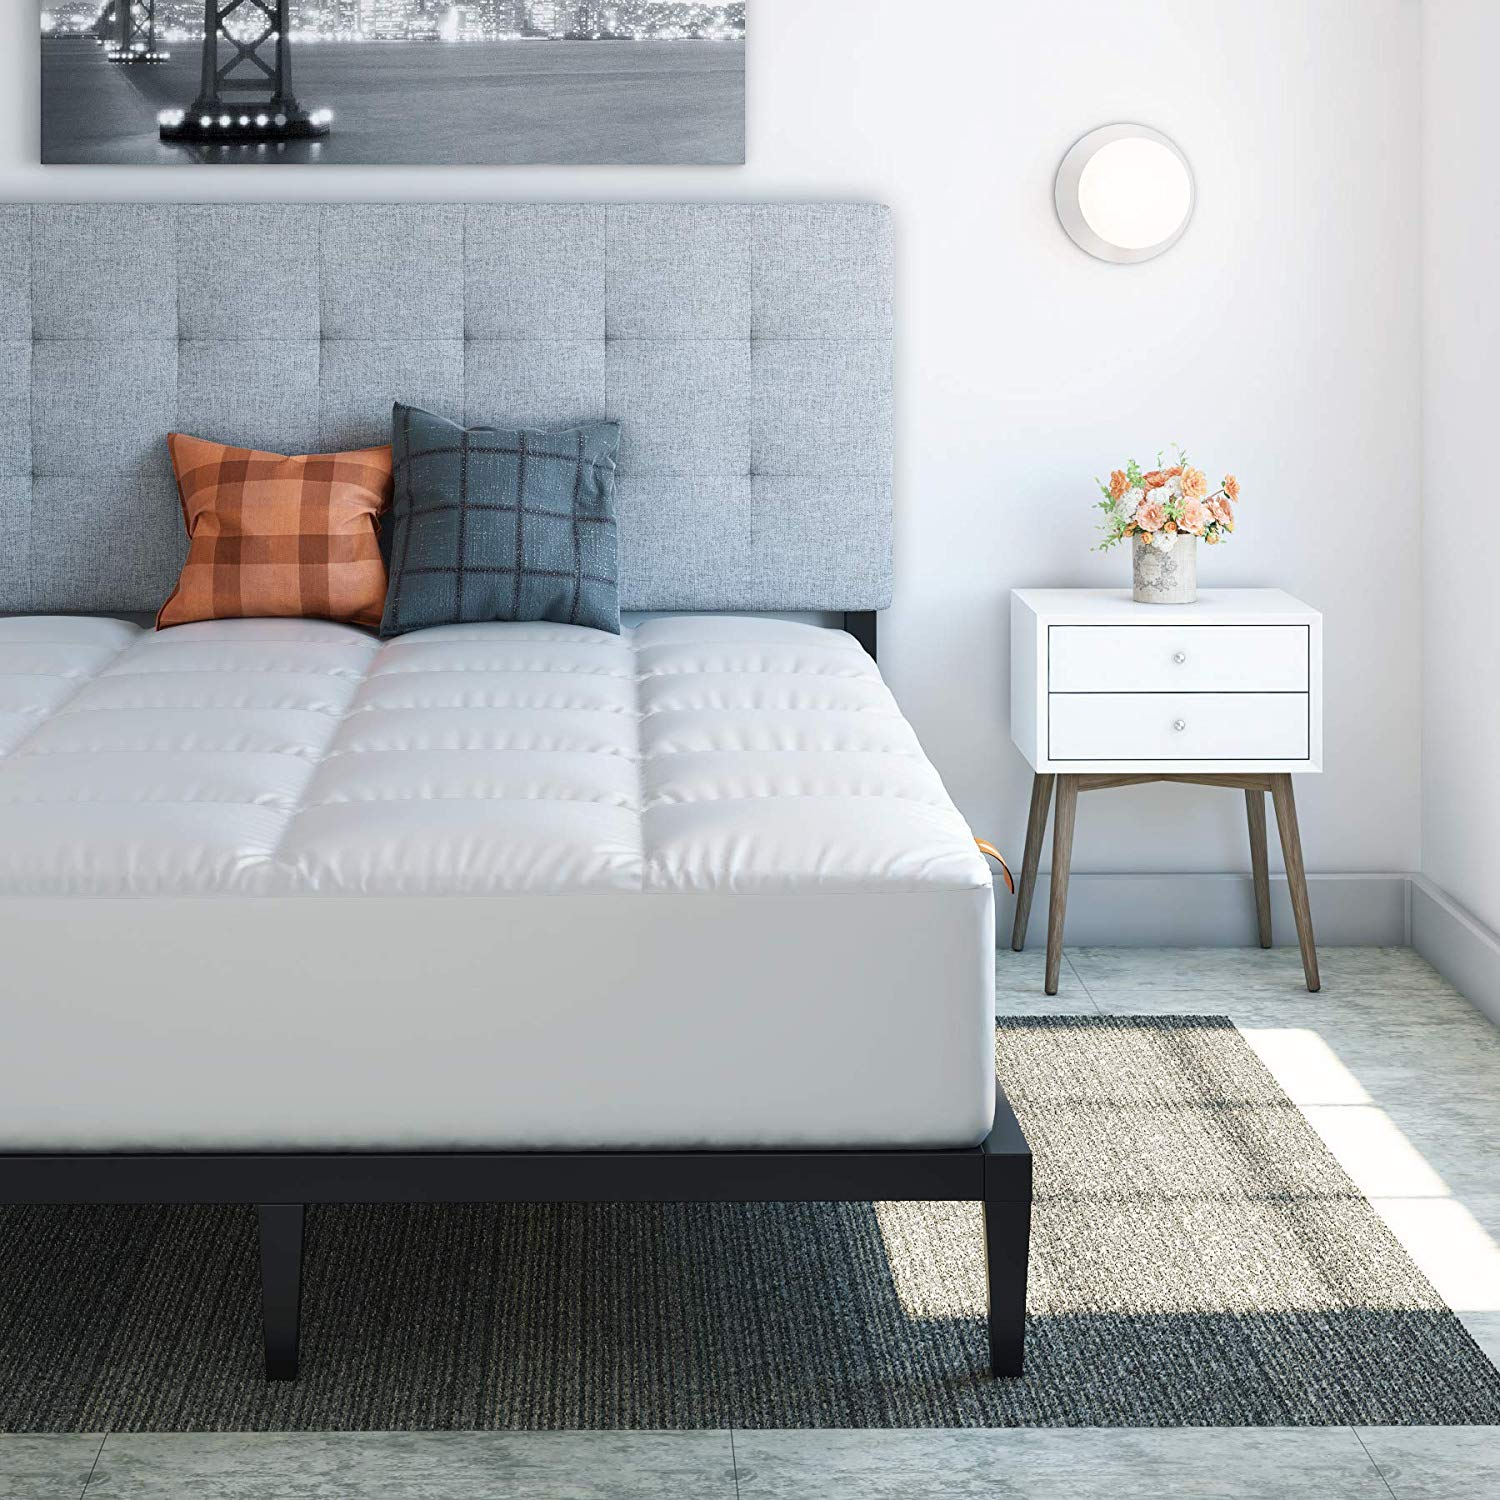 Hospitology Products best mattress pad review by www.dailysleep.org